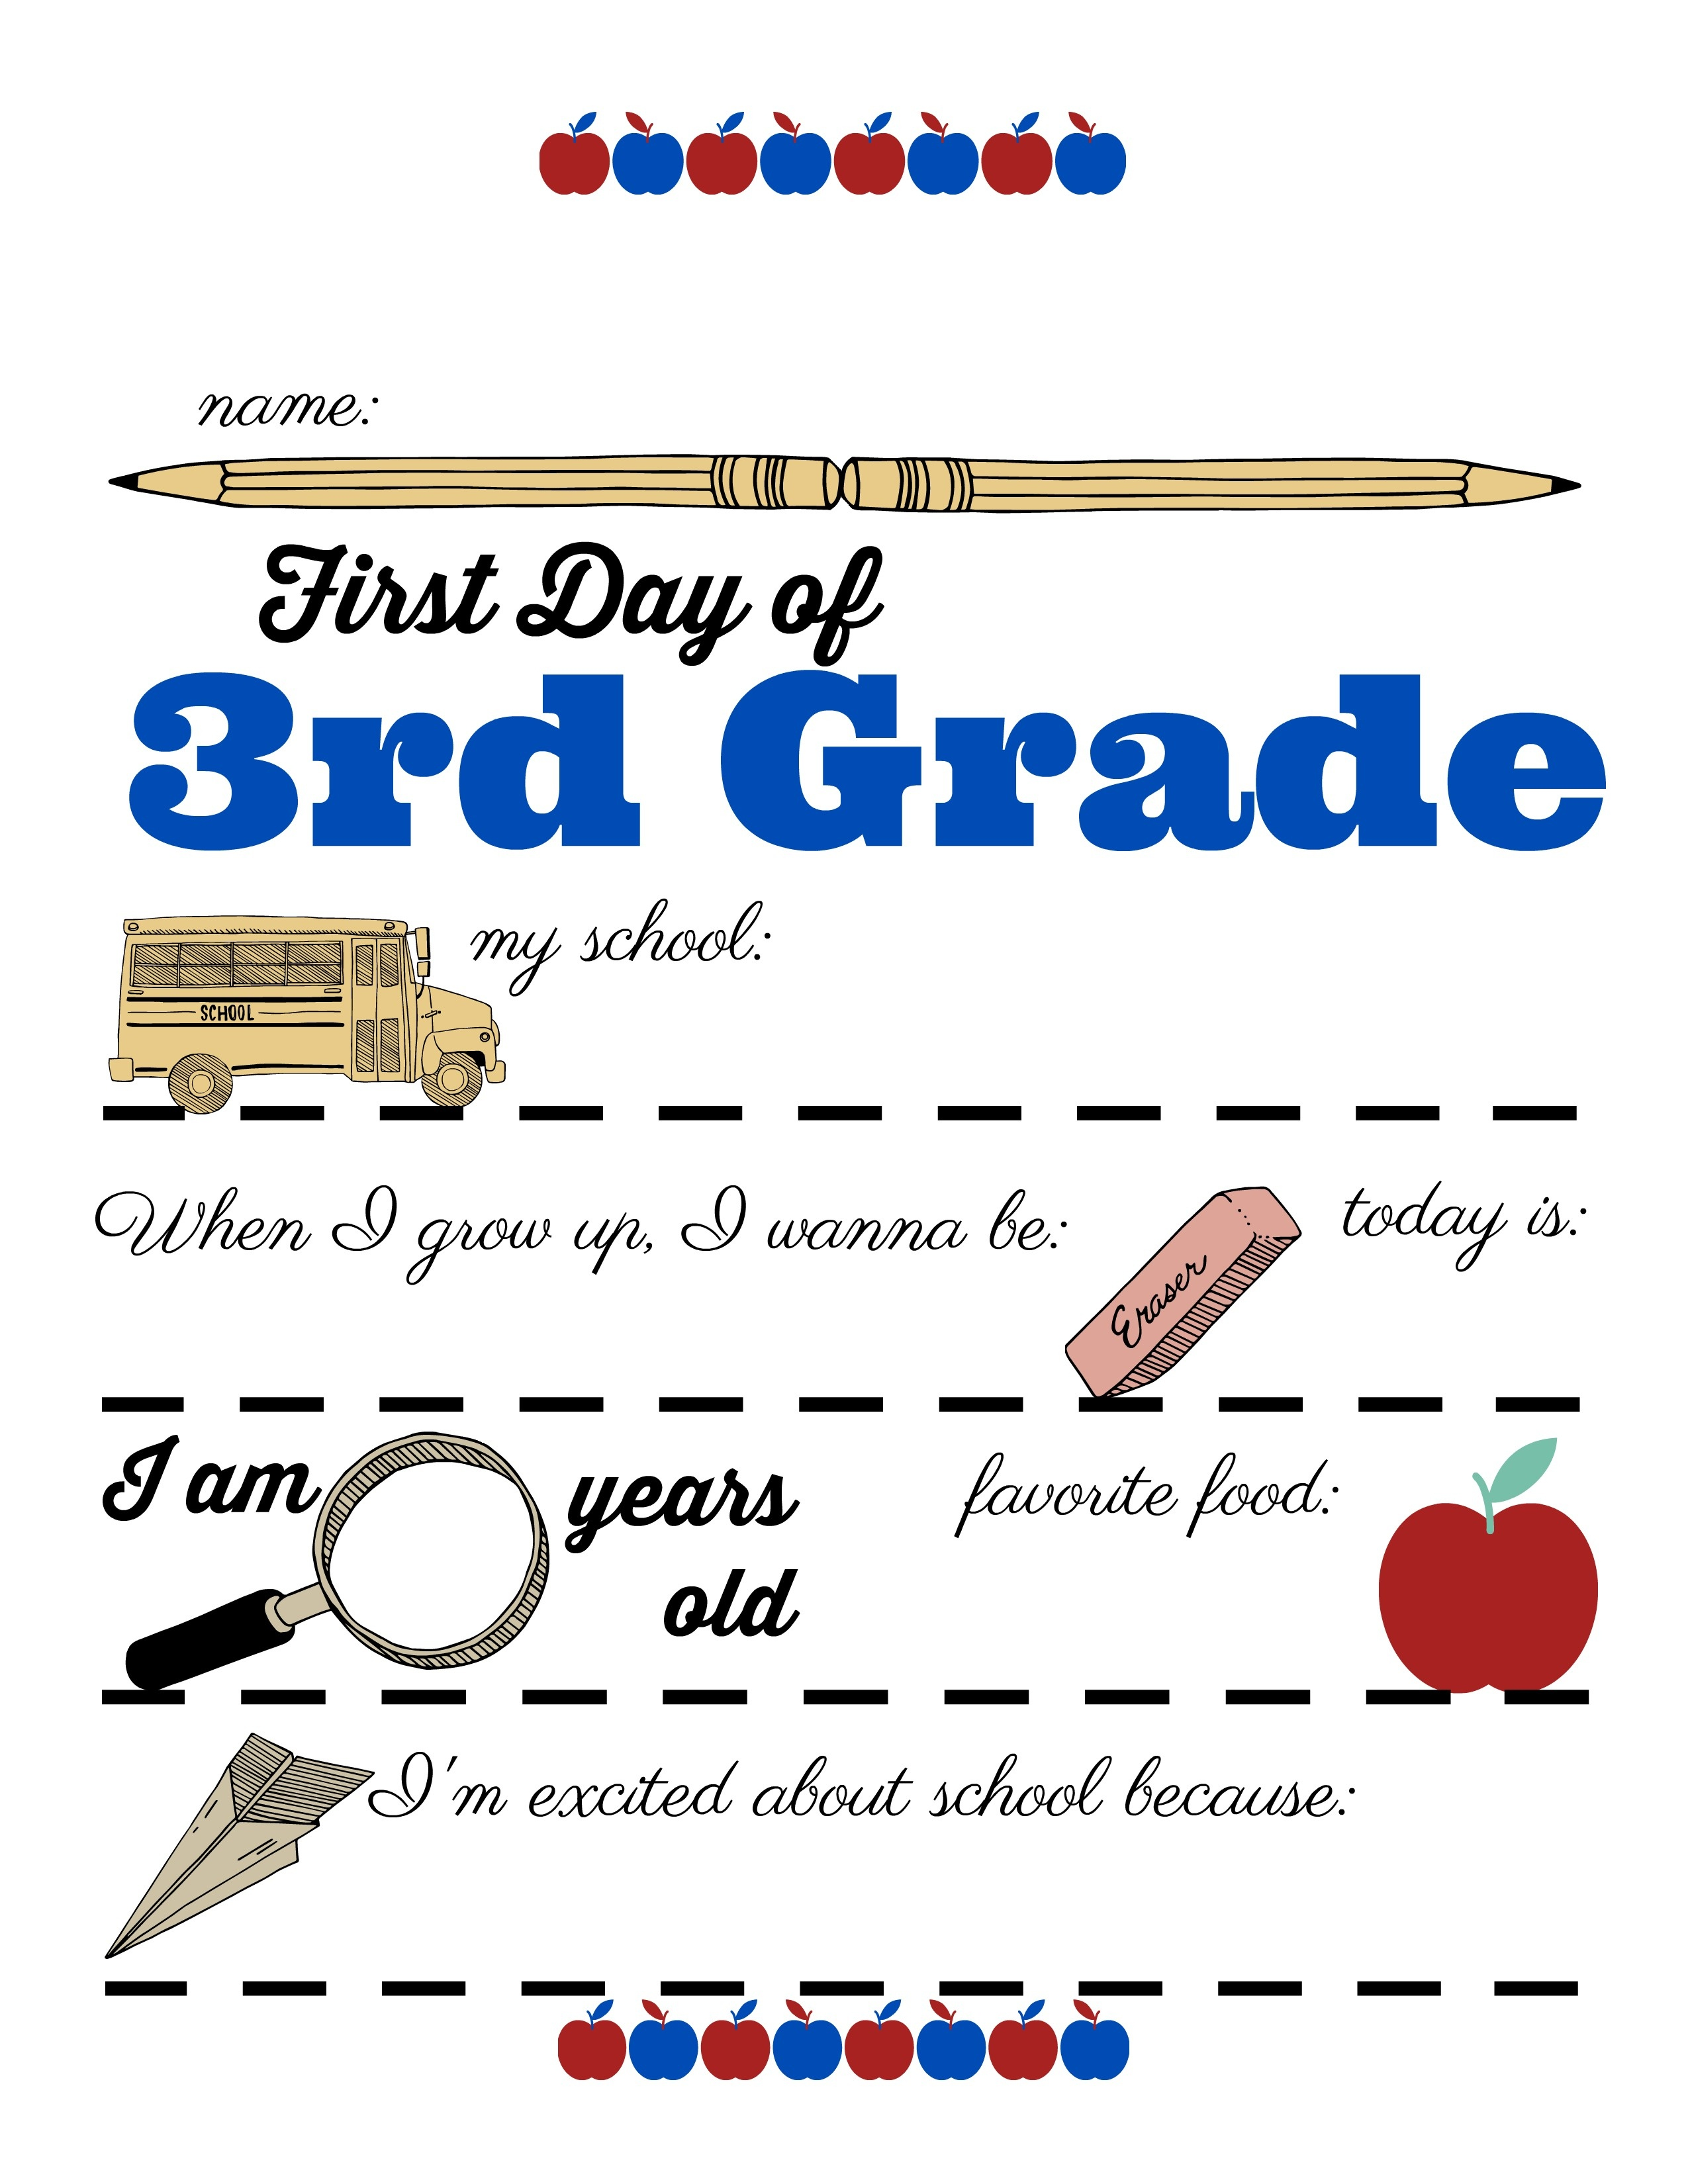 First Day Of School Sign Free Printable 3Rd Grade - Any Tots - First Day Of 3Rd Grade Free Printable